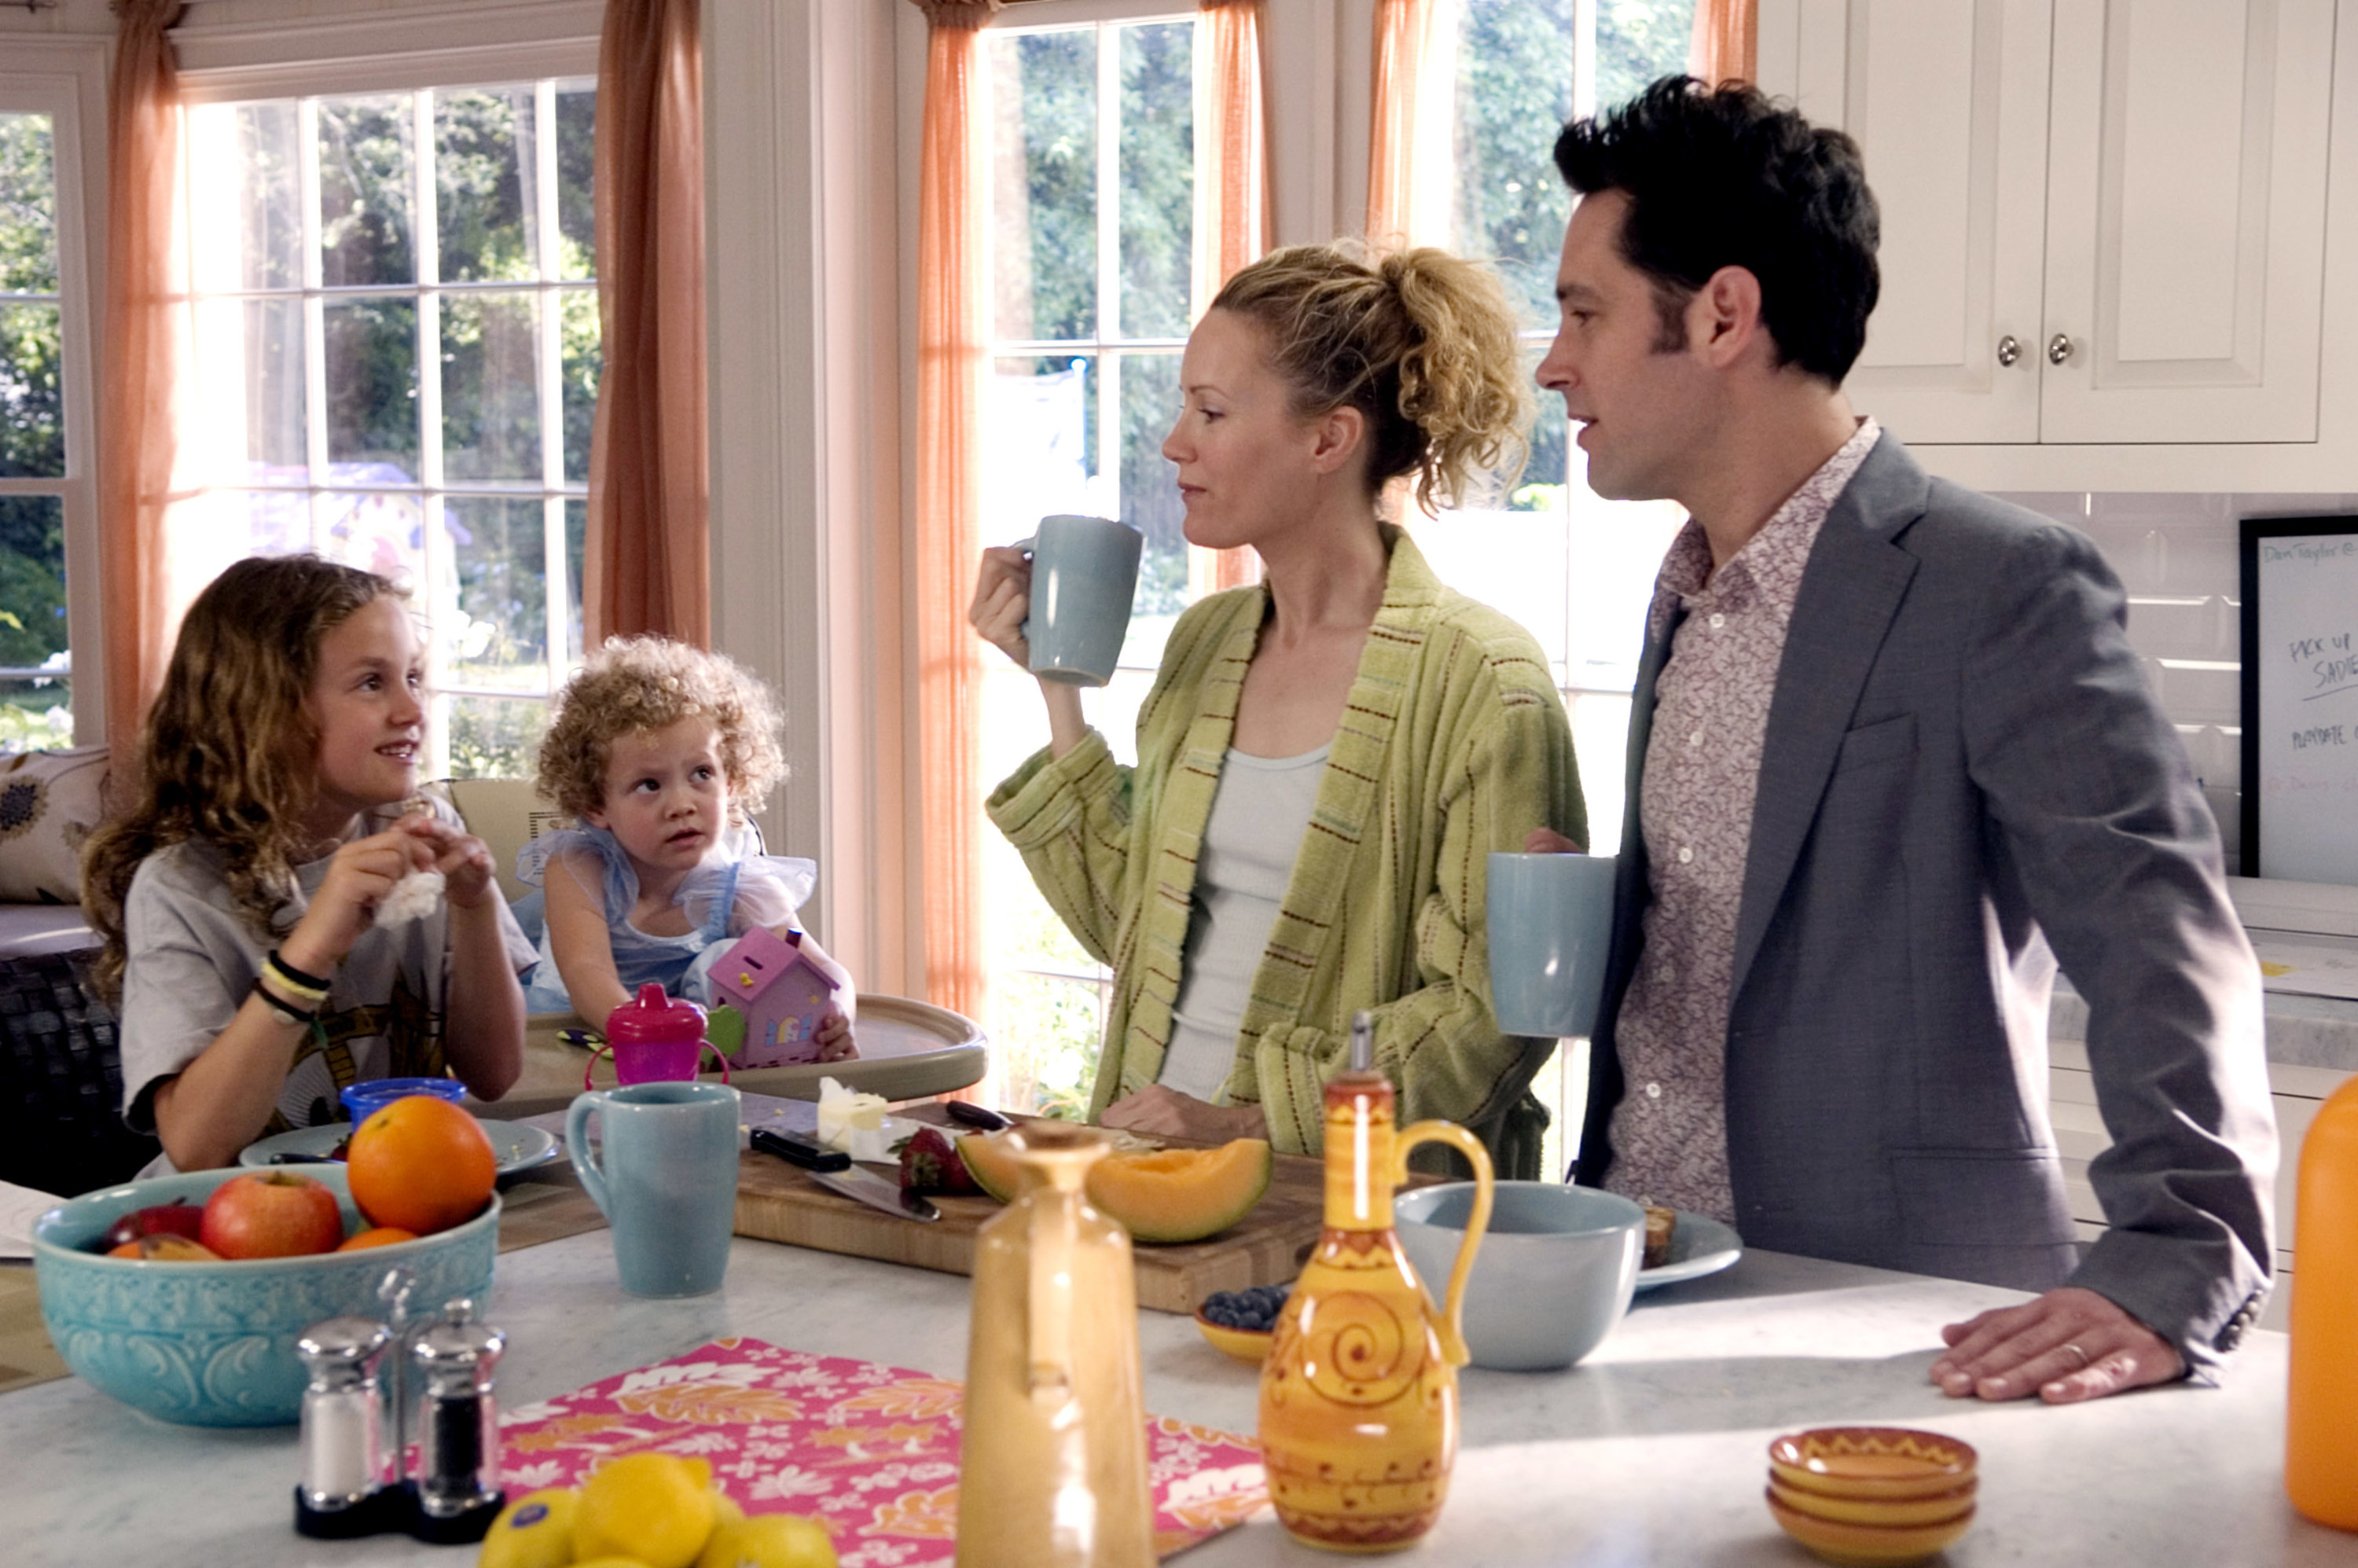 Pete and Debbie have breakfast with their daughters